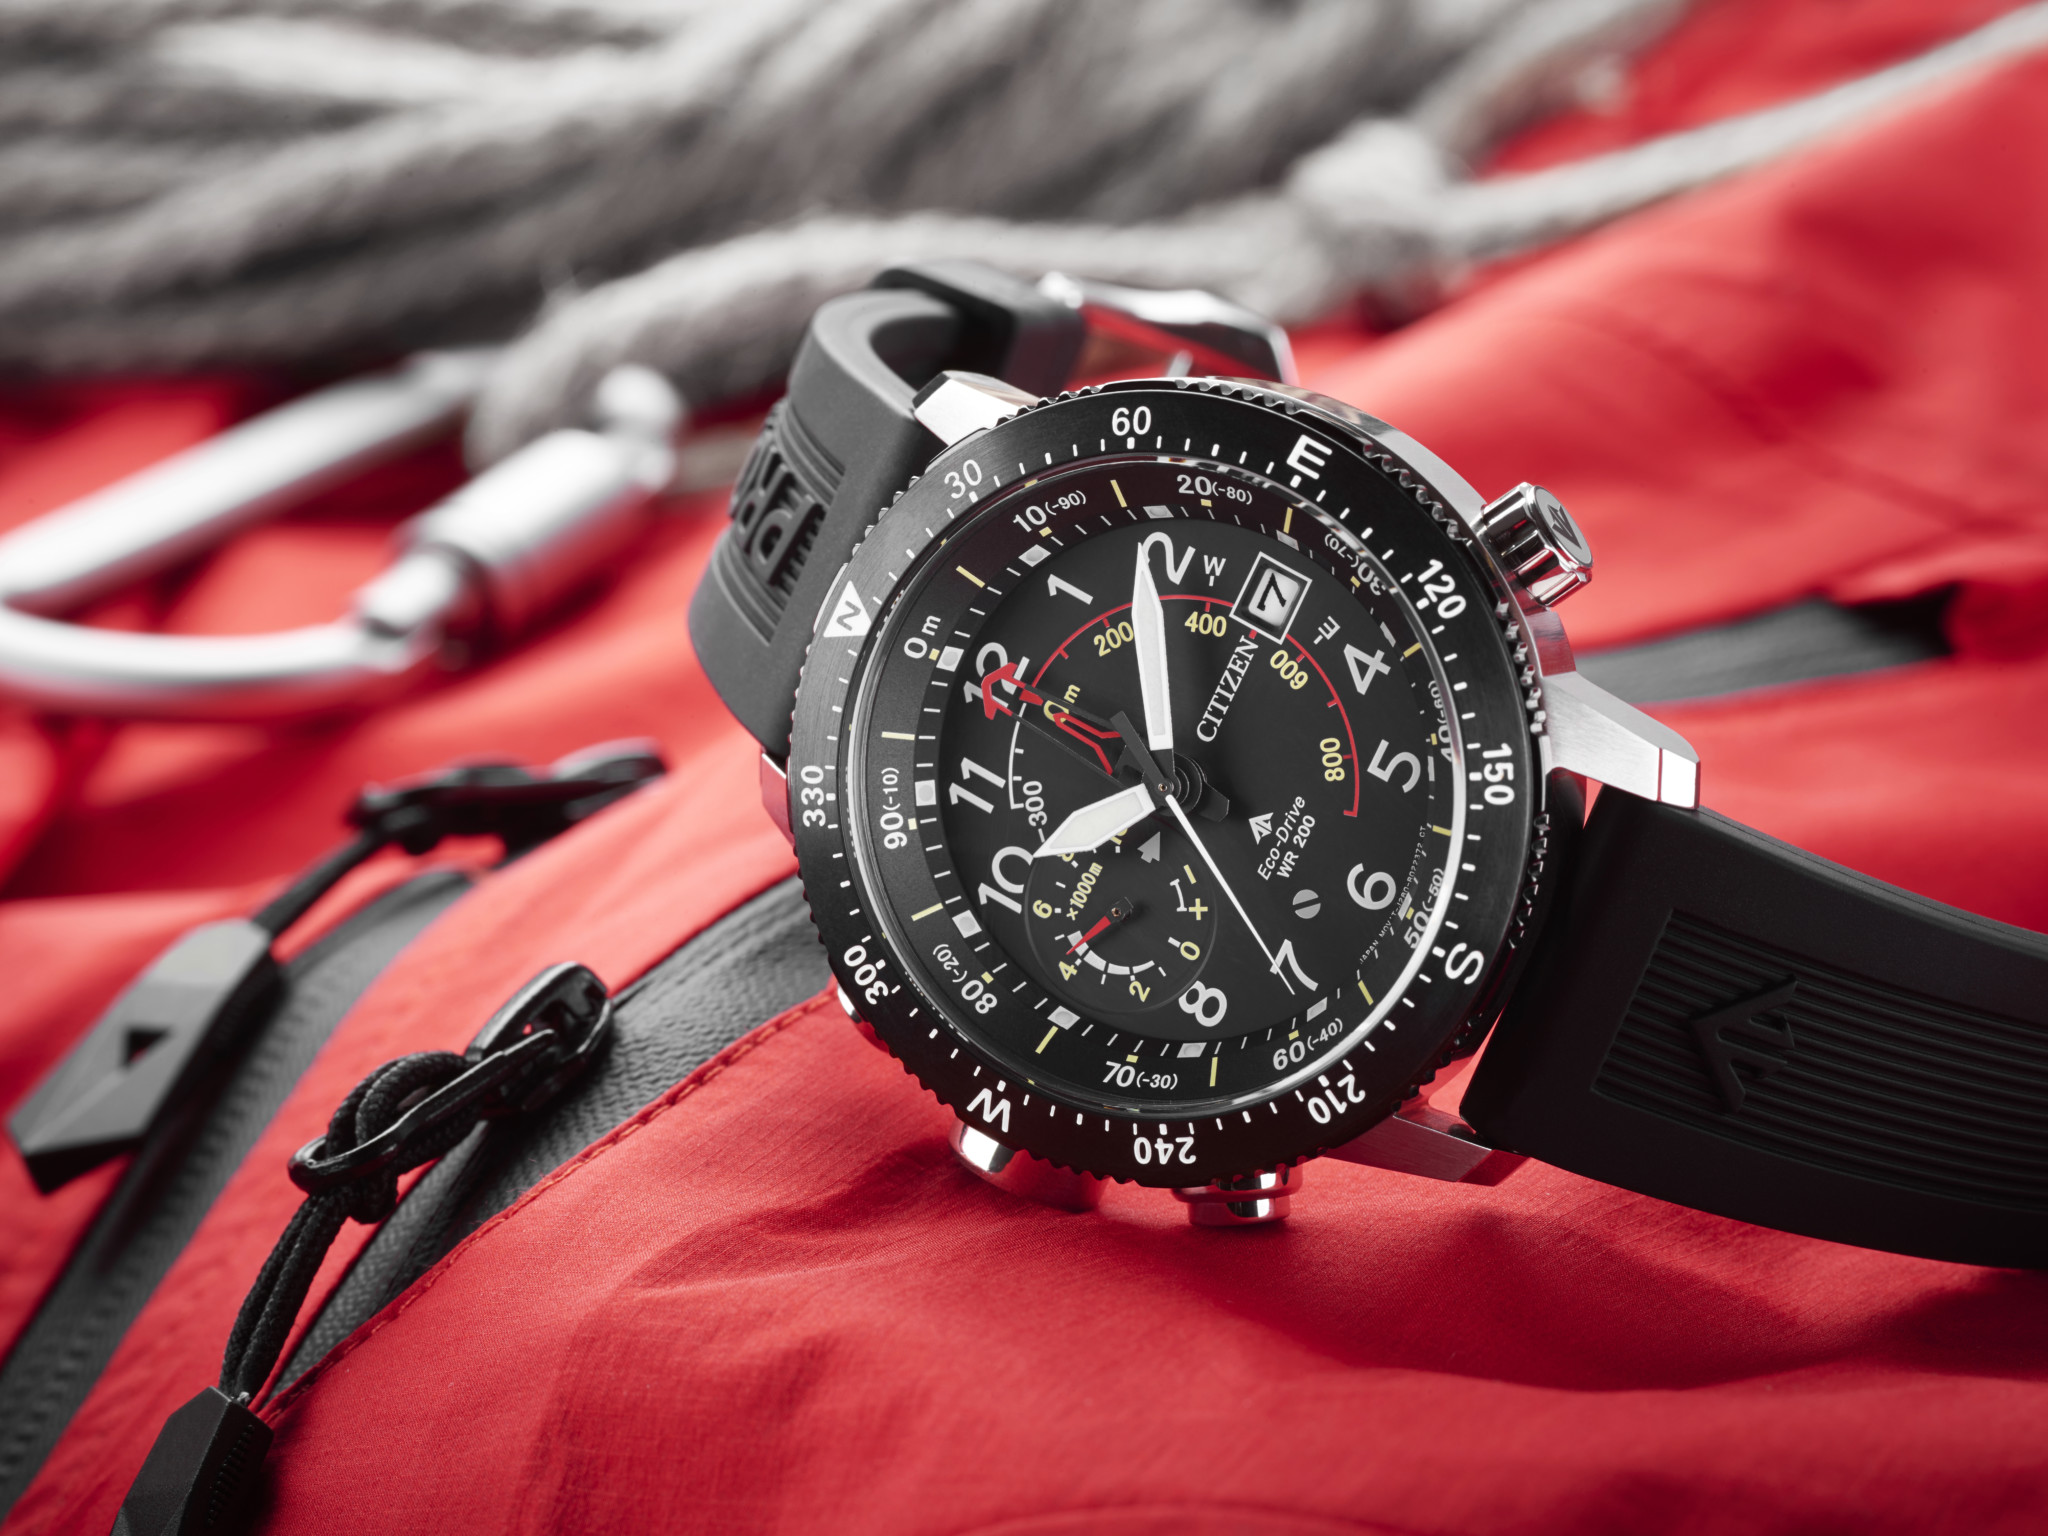 Citizen Promaster Altichron — Eco-Drive technology is joined by an altimeter and a compass for the ultimate adventure-seeker's timepiece. )